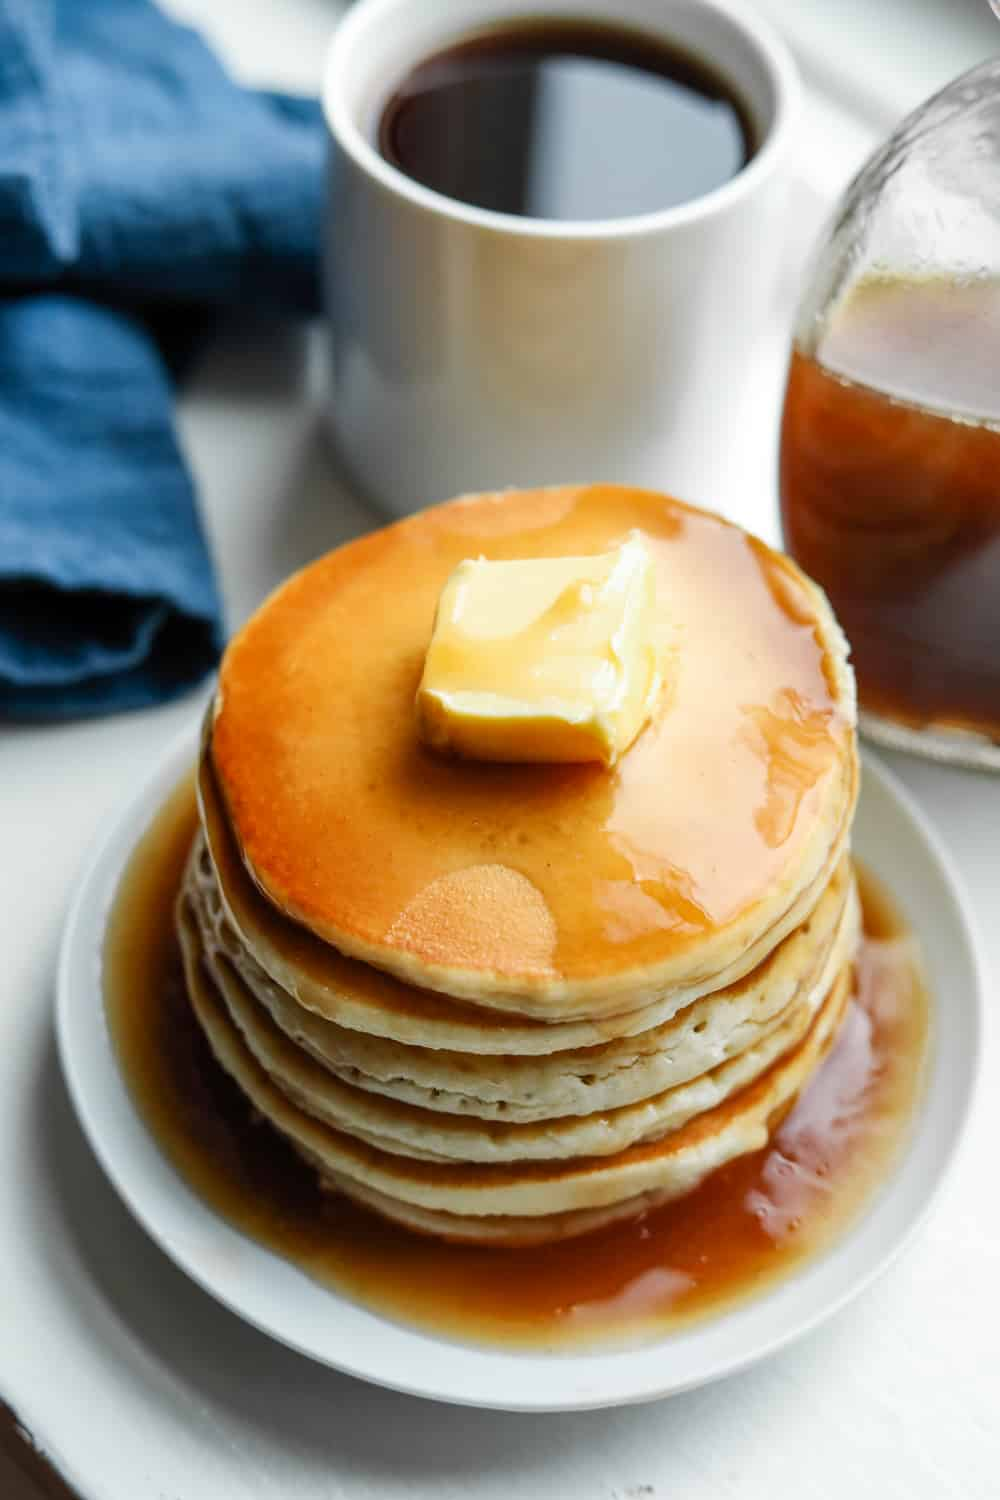 A stack of pancakes covered in maple syrup. There's a blue napkin a cup of coffee and a bottle of syrup behind the pancakes.